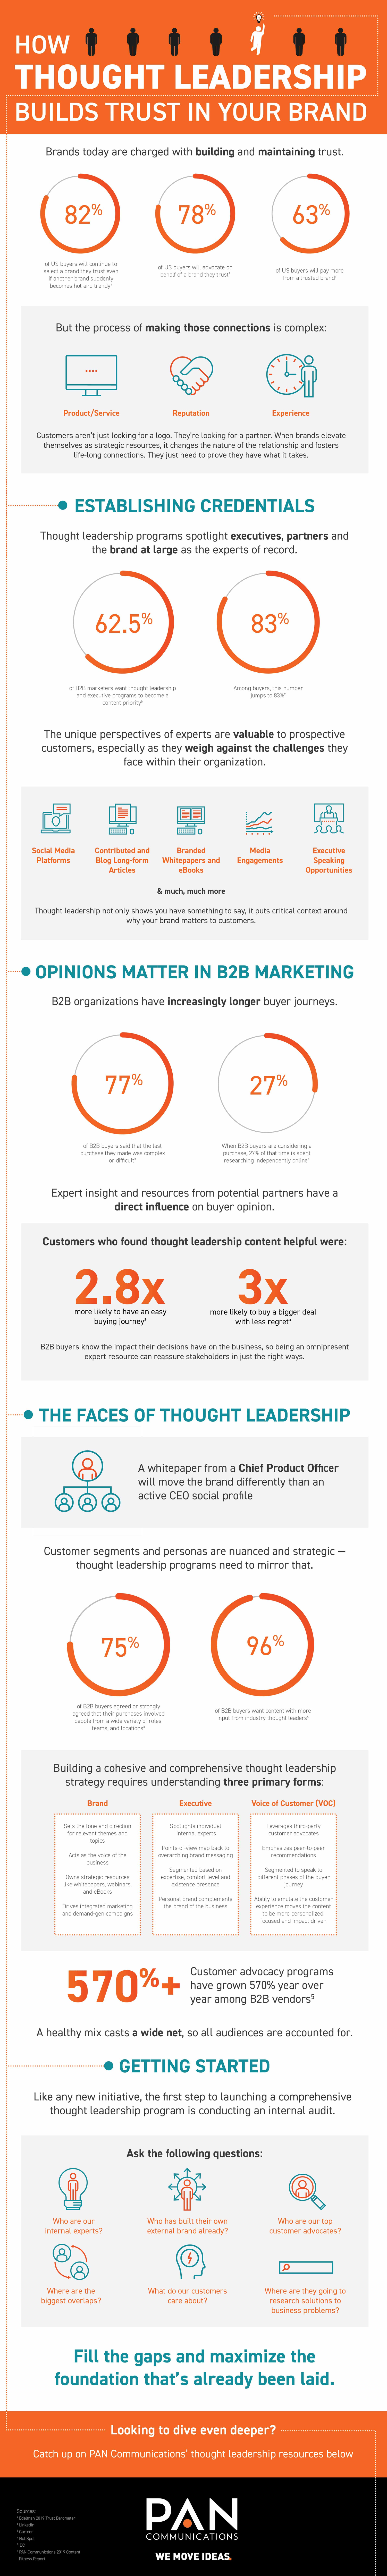 Why thought leadership is the catalyst for building trust for B2B brands